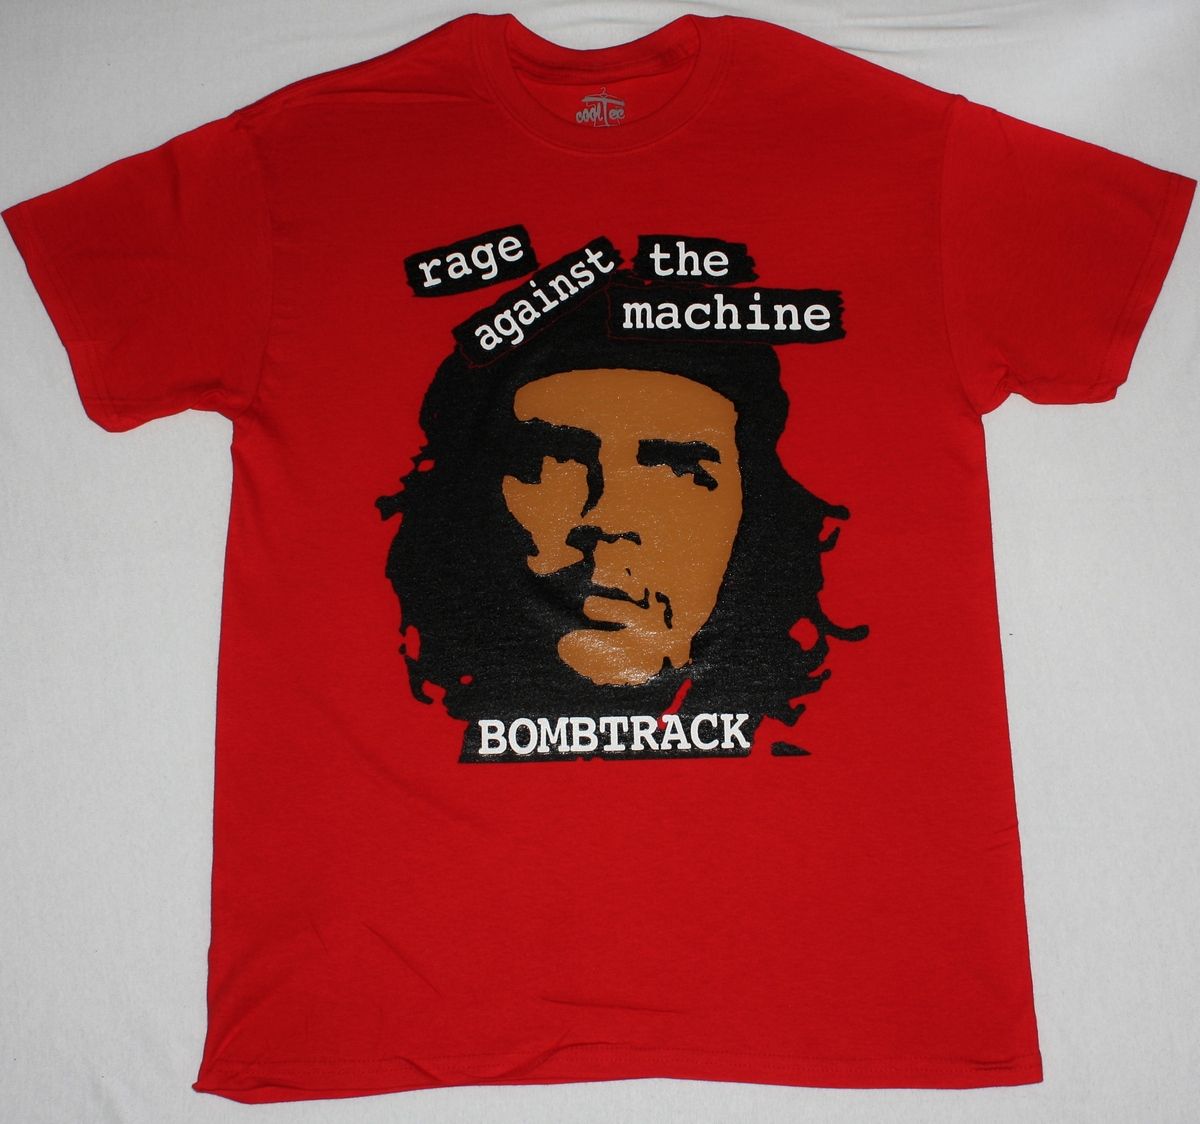 RAGE AGAINST THE MACHINE BOMBTRACK NEW RED T-SHIRT